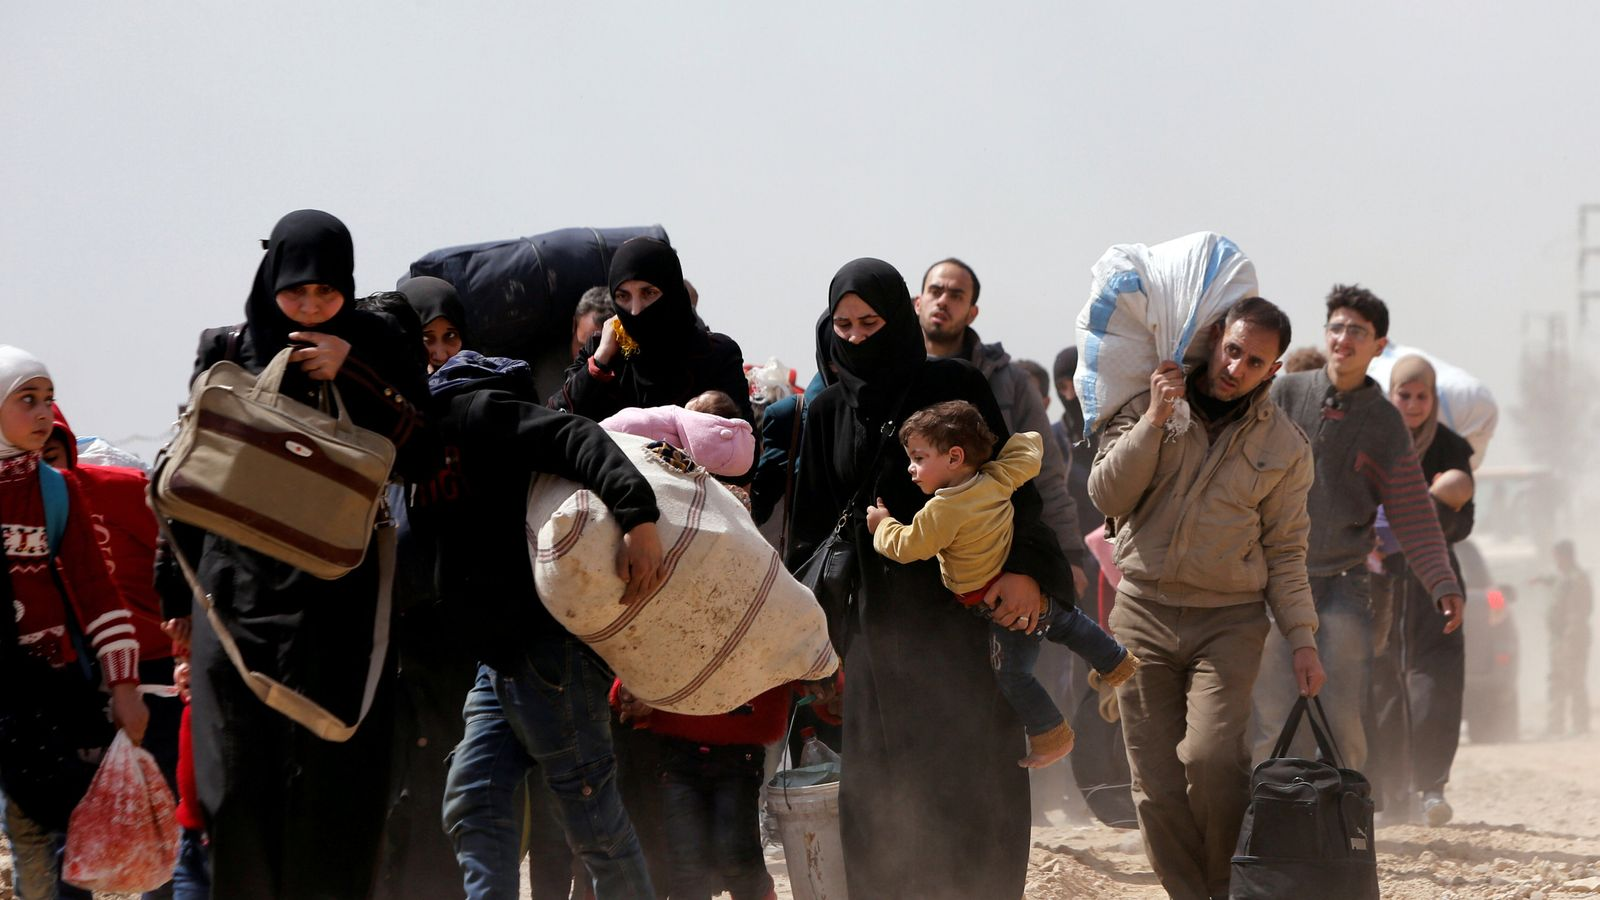 War in Syria: Thousands flee as dozens killed in eastern Ghouta and Afrin